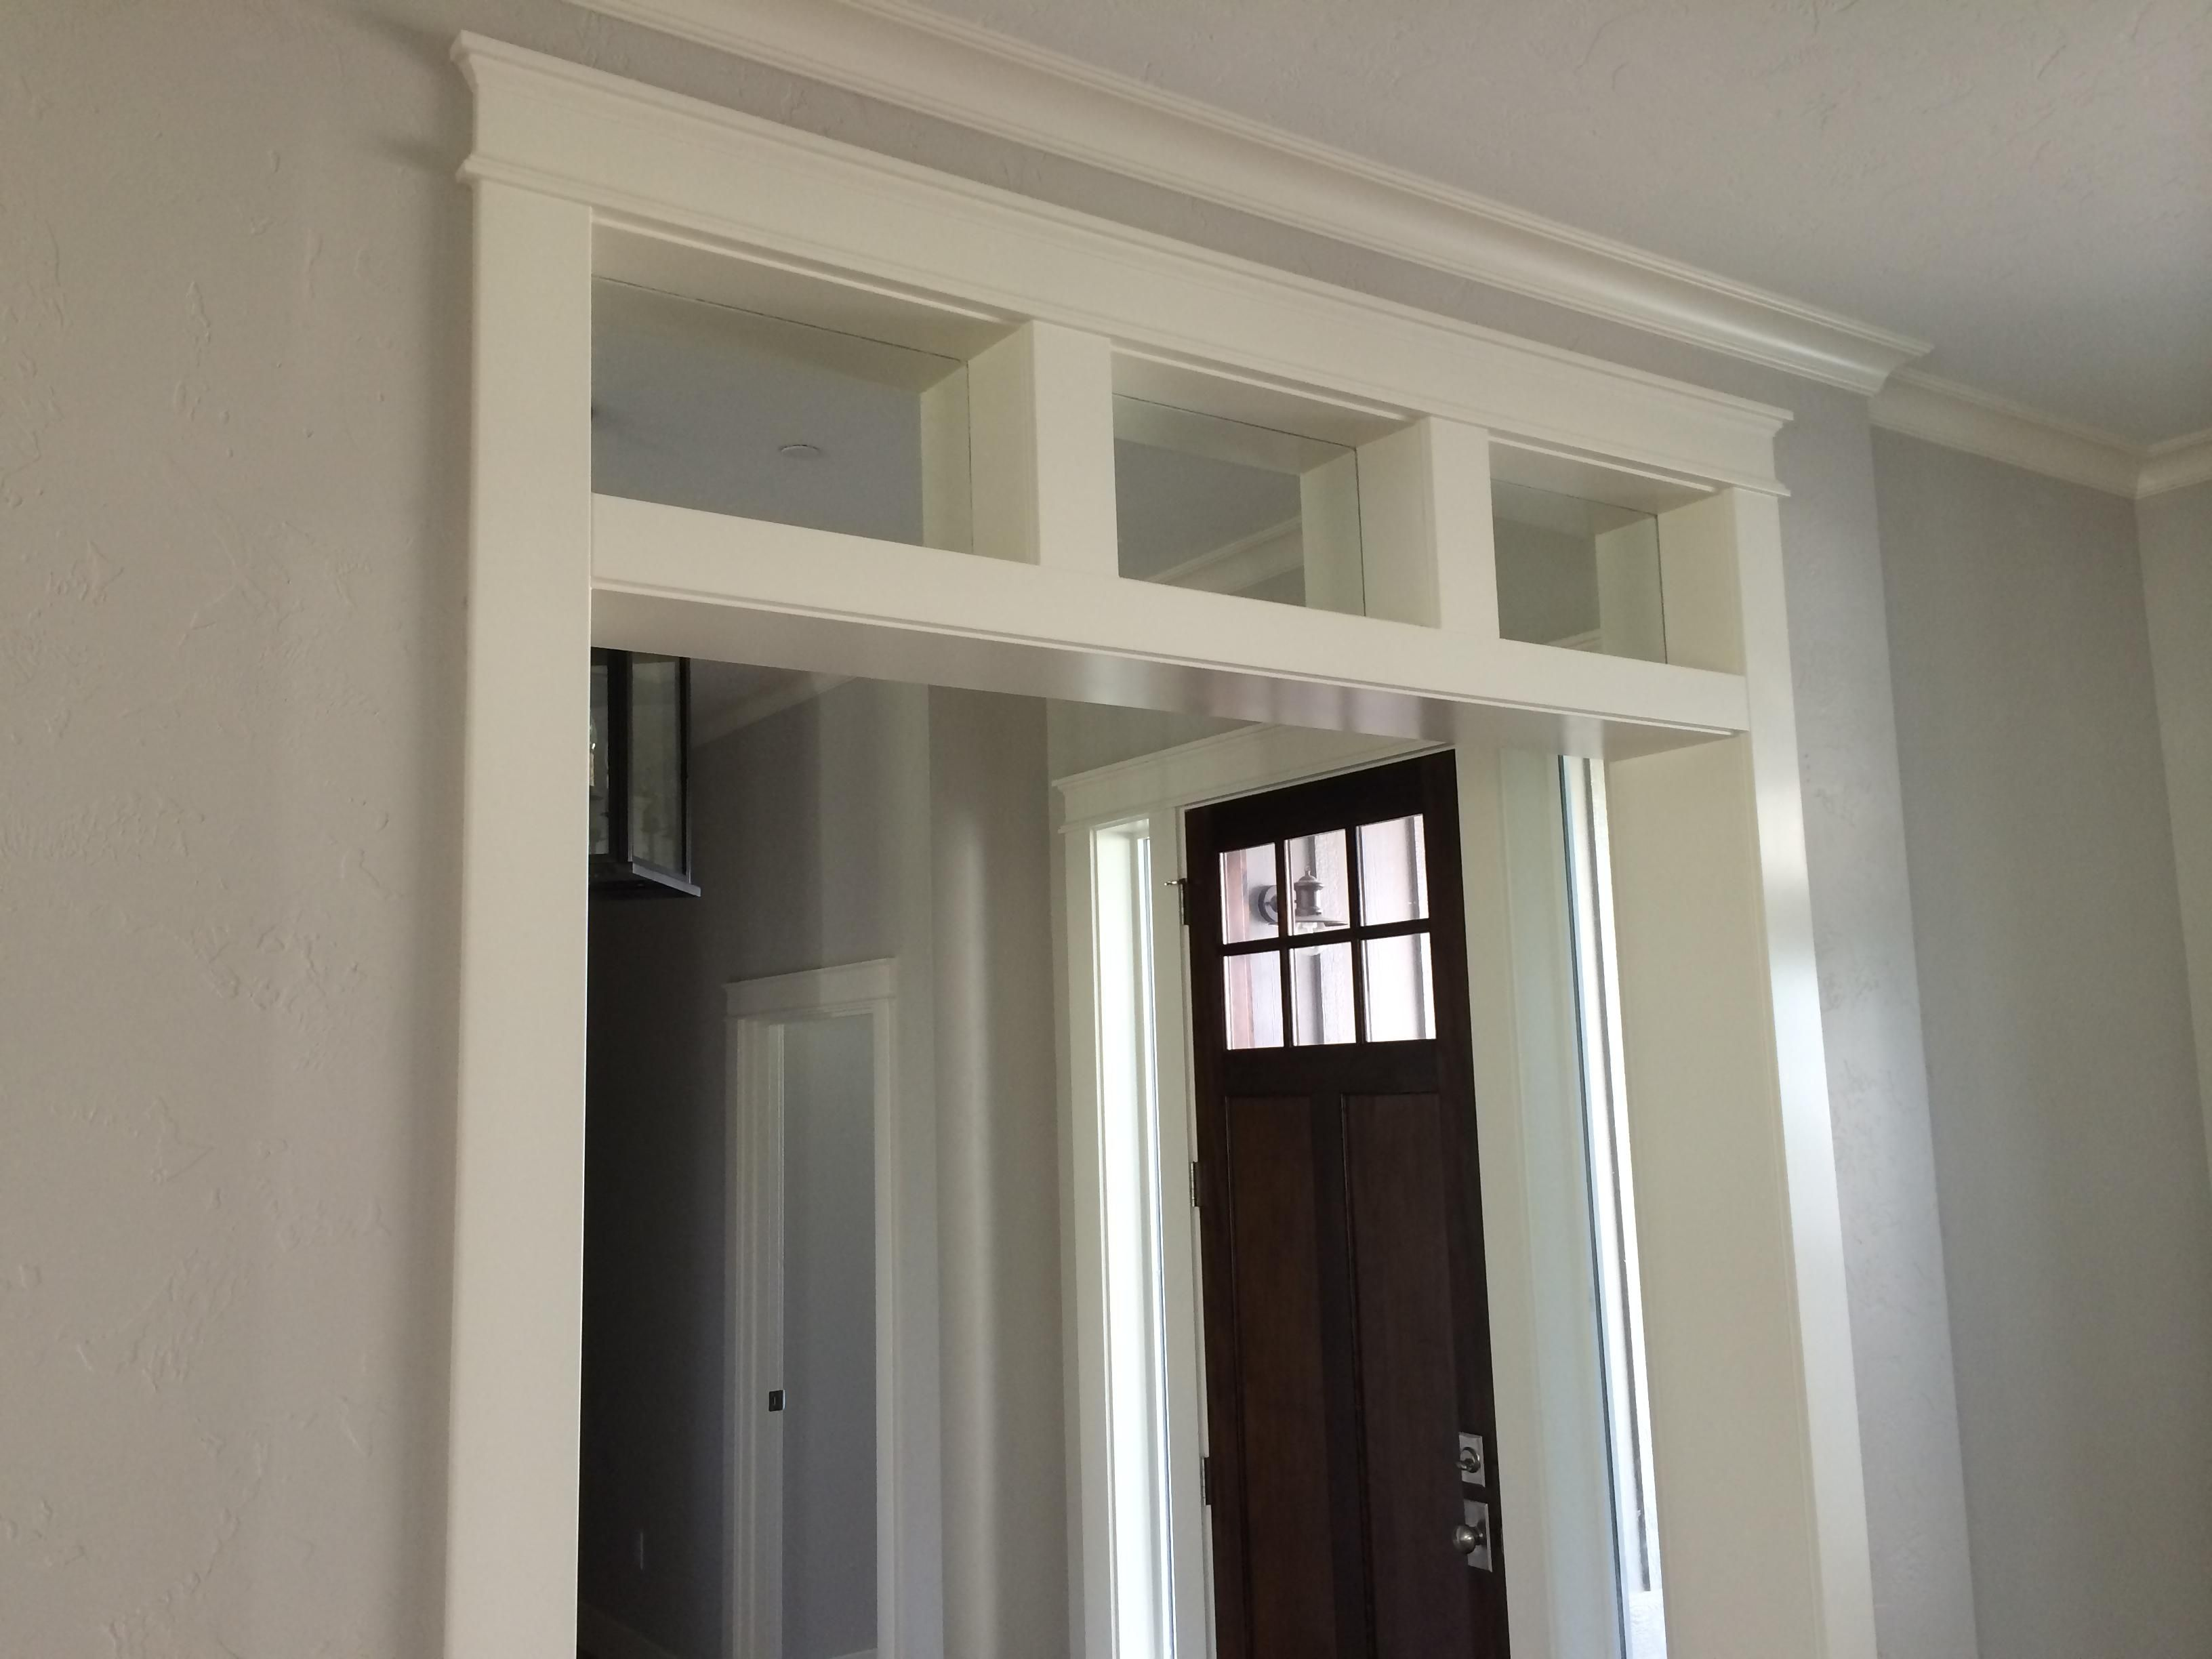 interior transom window ideas | Decoratingspecial.com